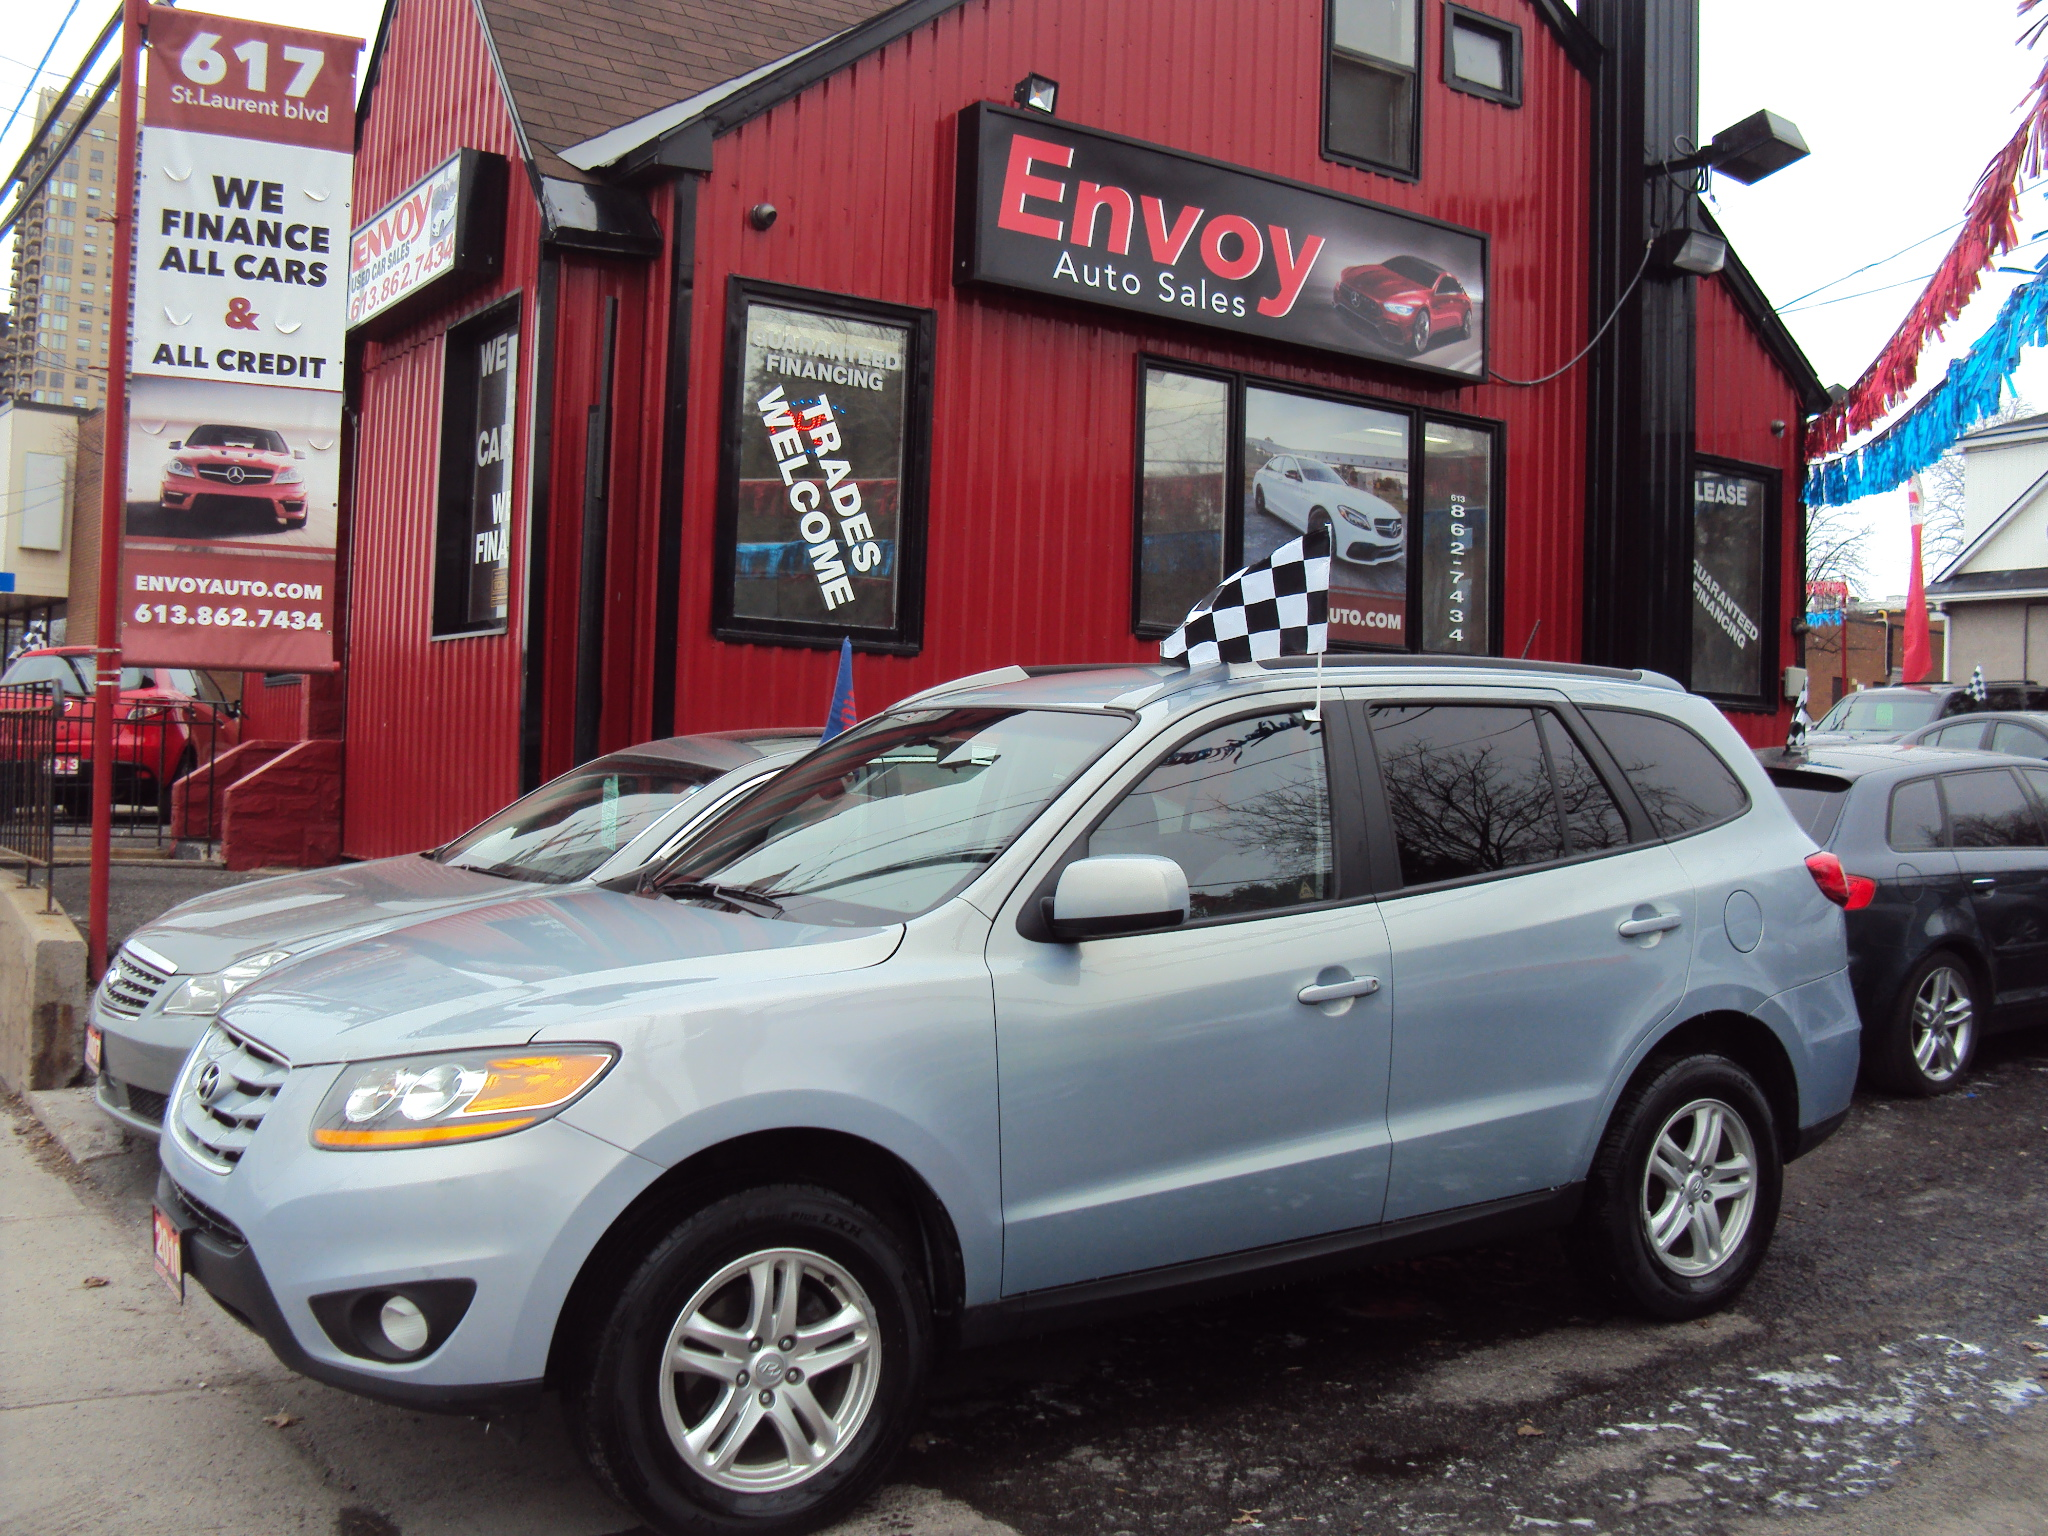 Envoy Auto Sales - Ottawa, ON: Read Consumer reviews, Browse Used ...